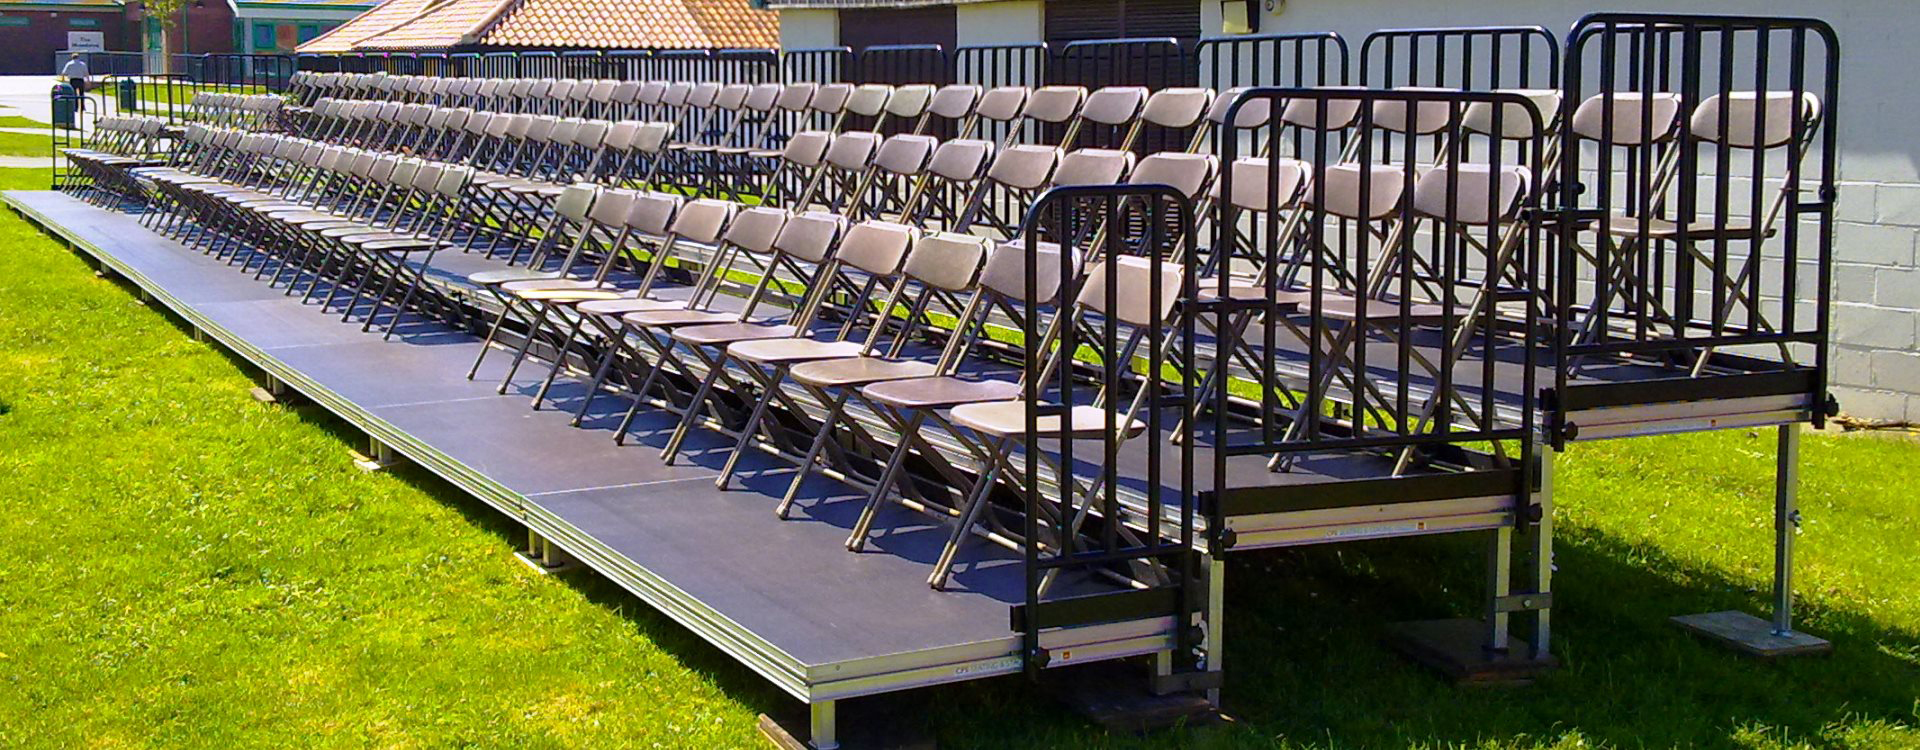 Demountable Seating